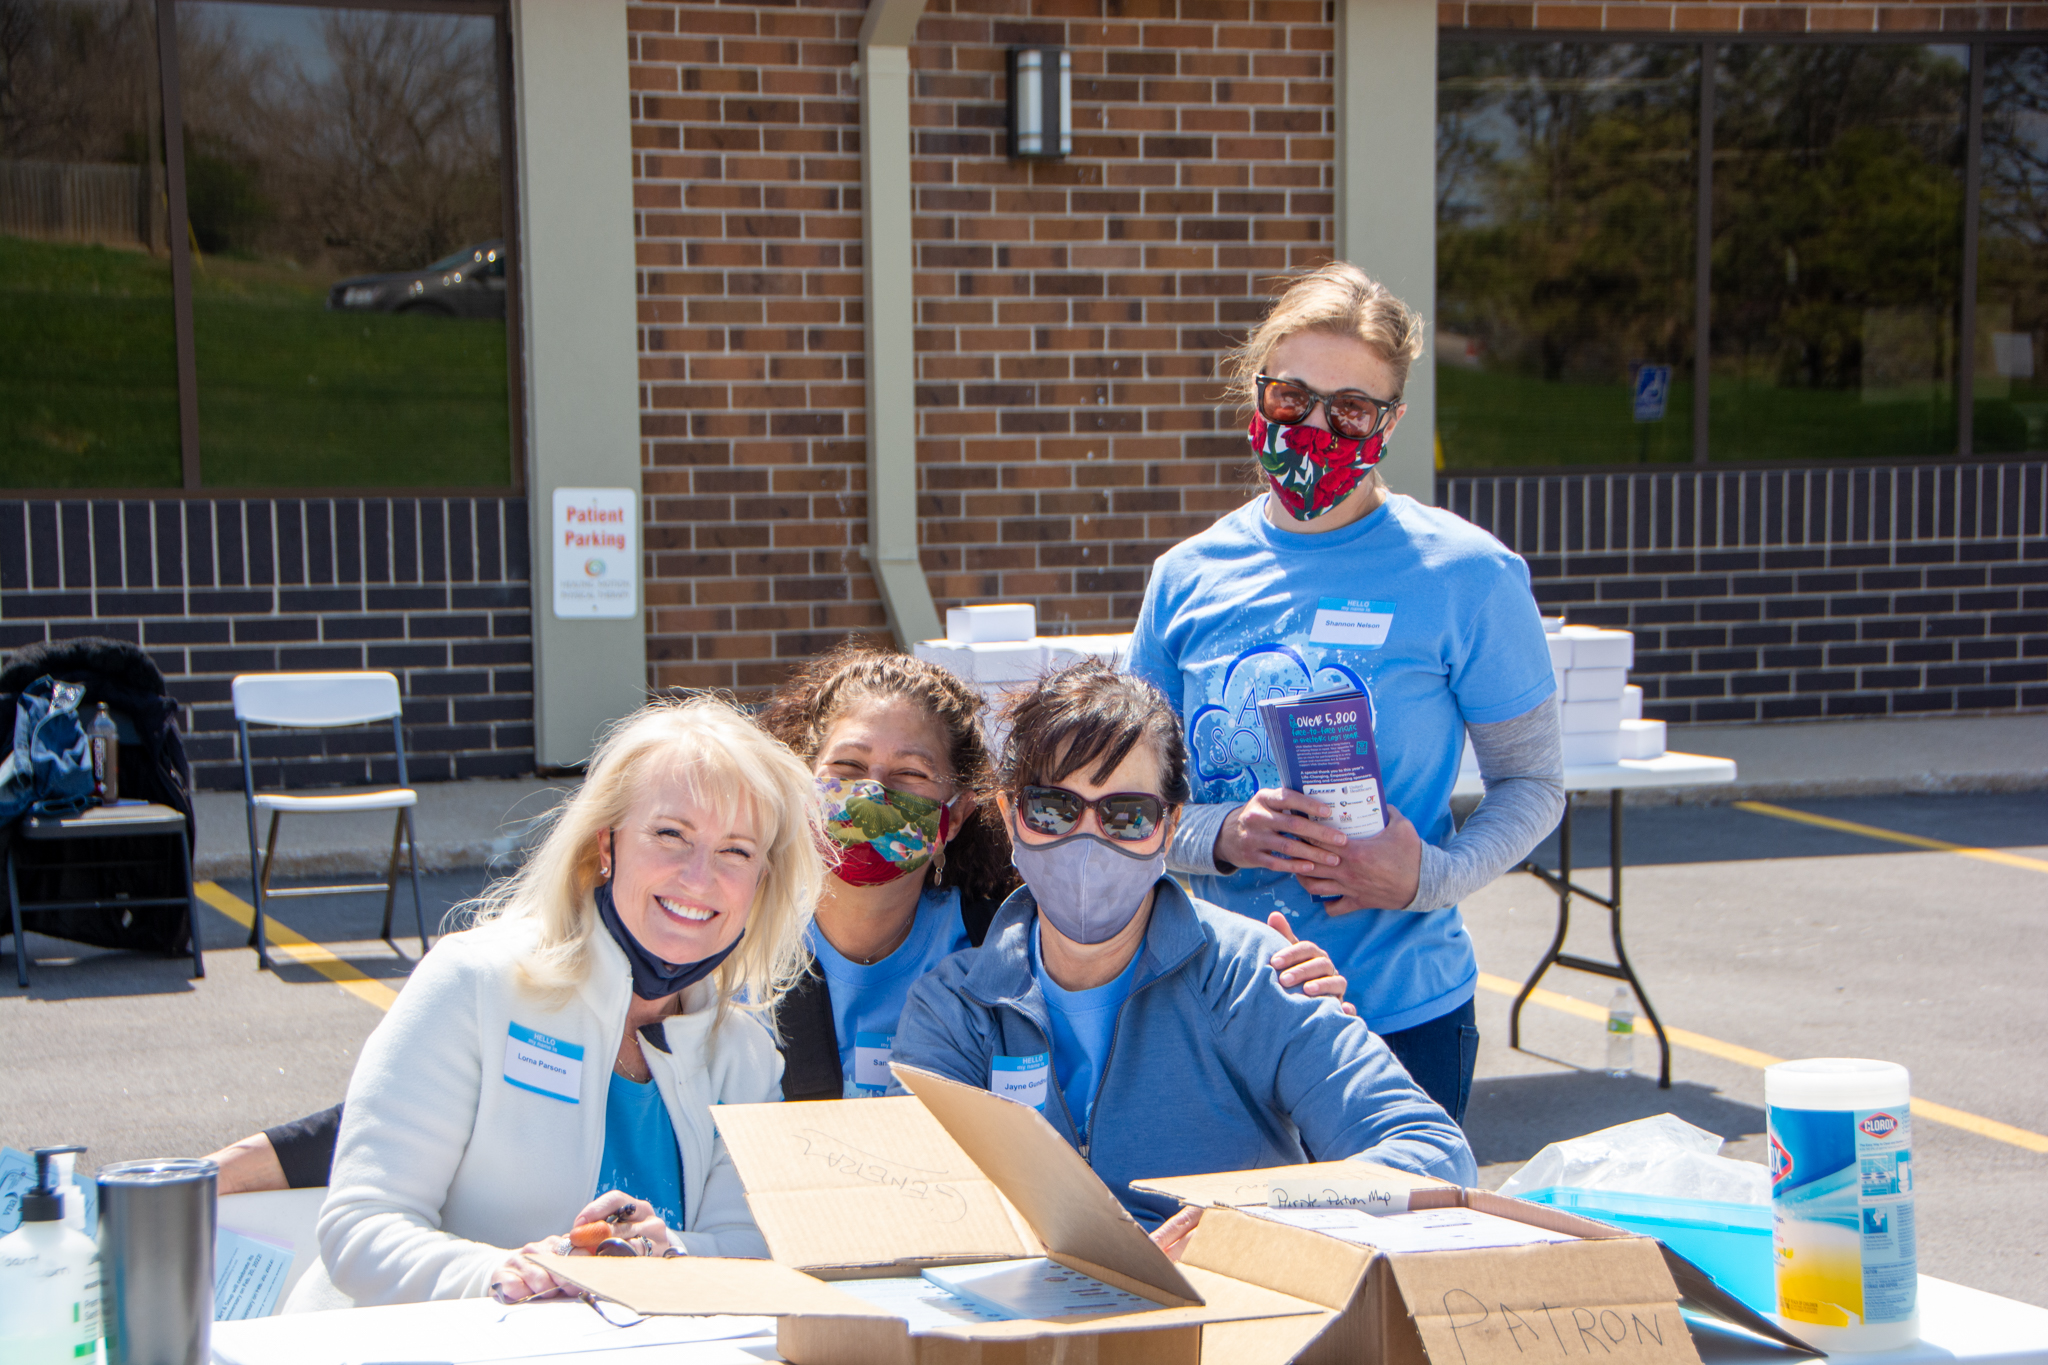 Art & Soup volunteers with masks at volunteer table outside of VNA's office